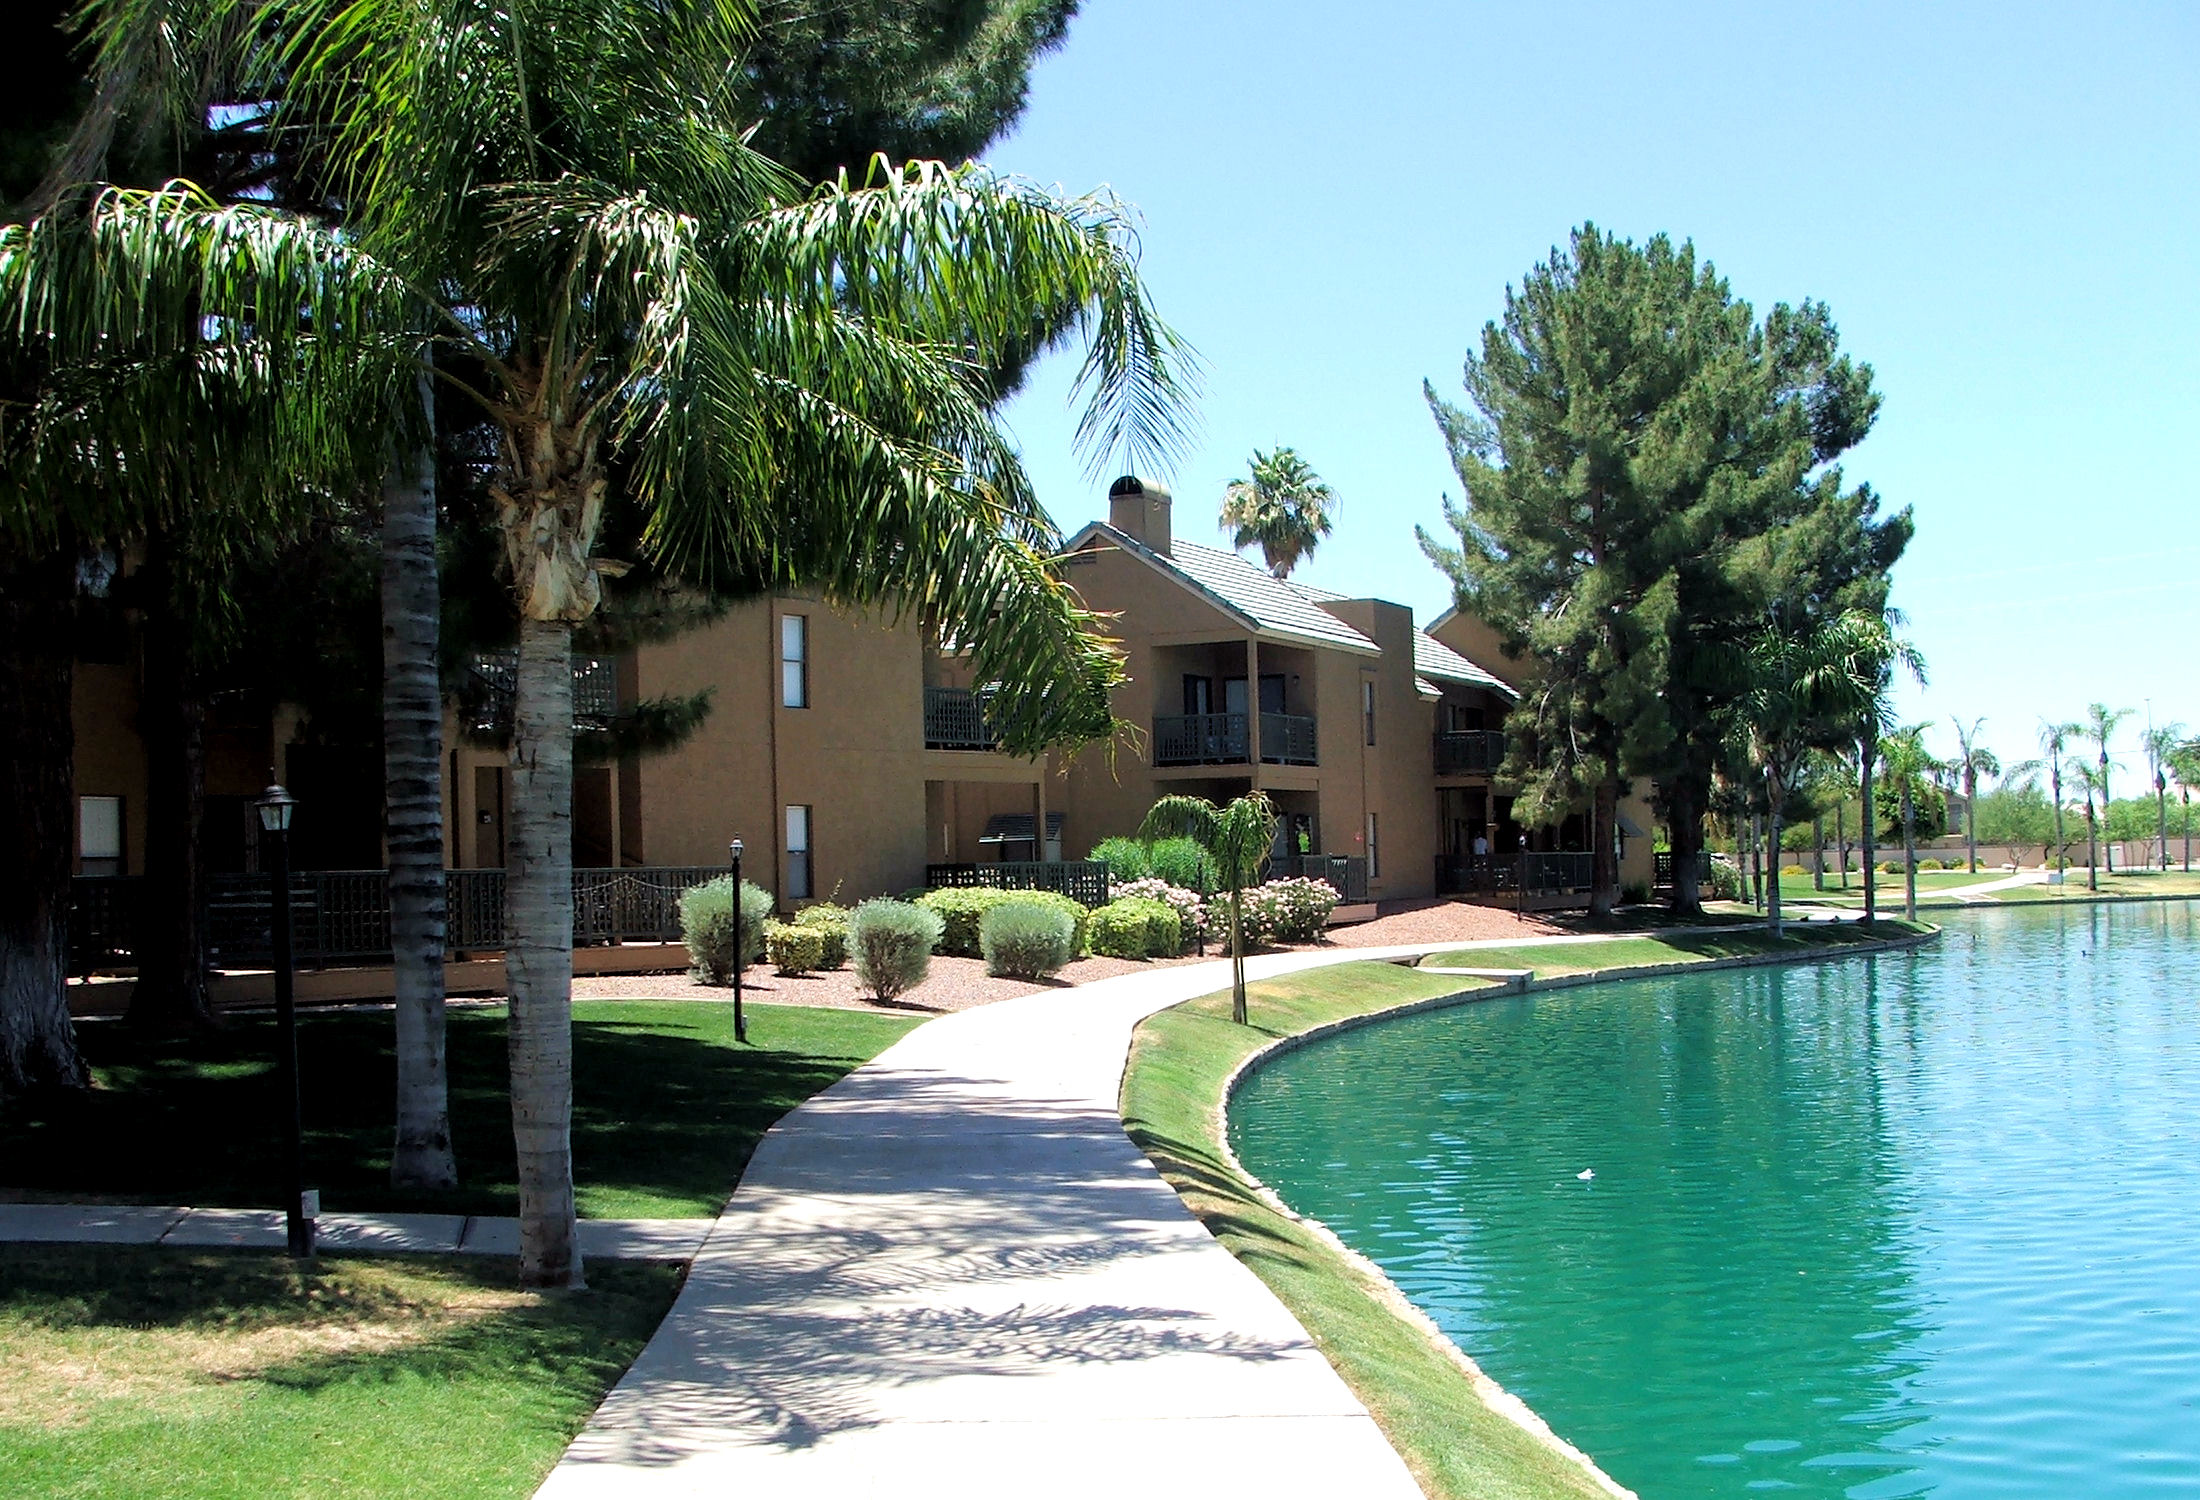 Chandler waterfront condos for sale at lakeside village at andersen